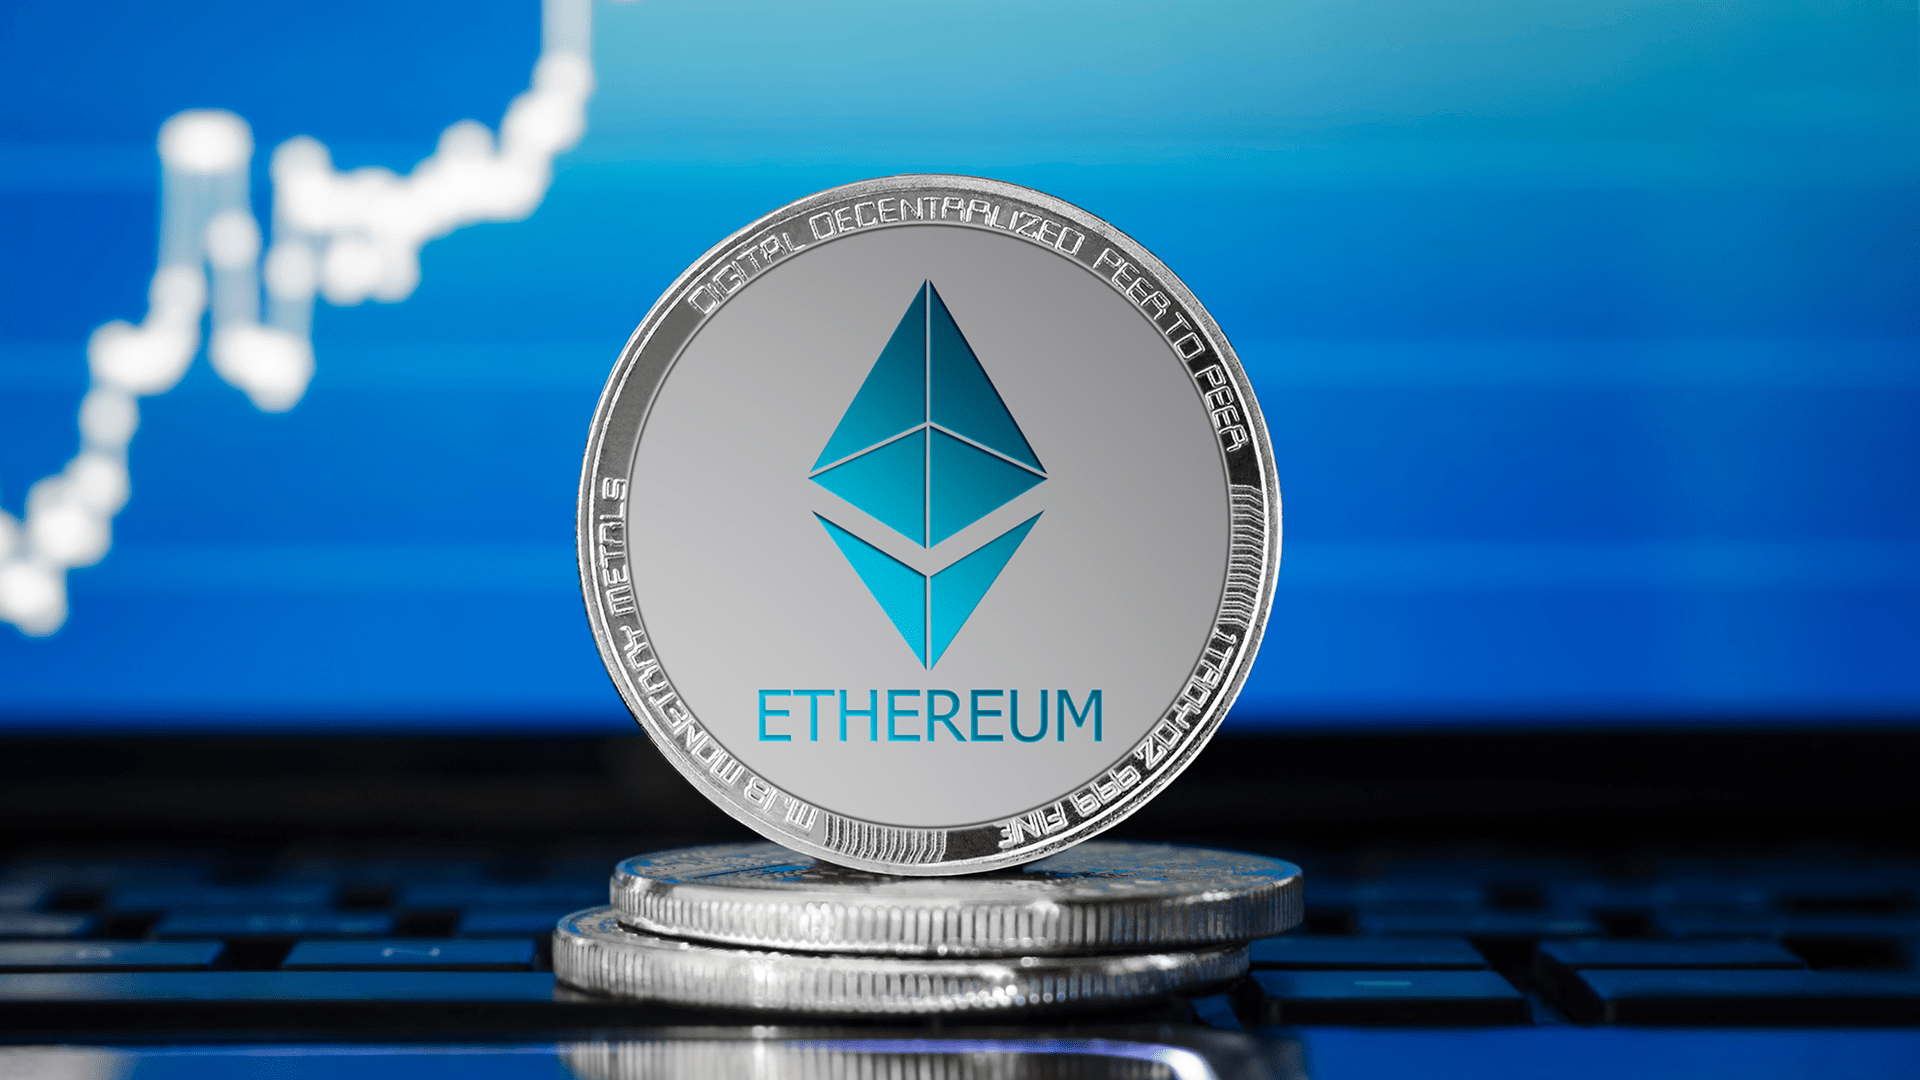 Ethereum: Did recent gains even make a difference?